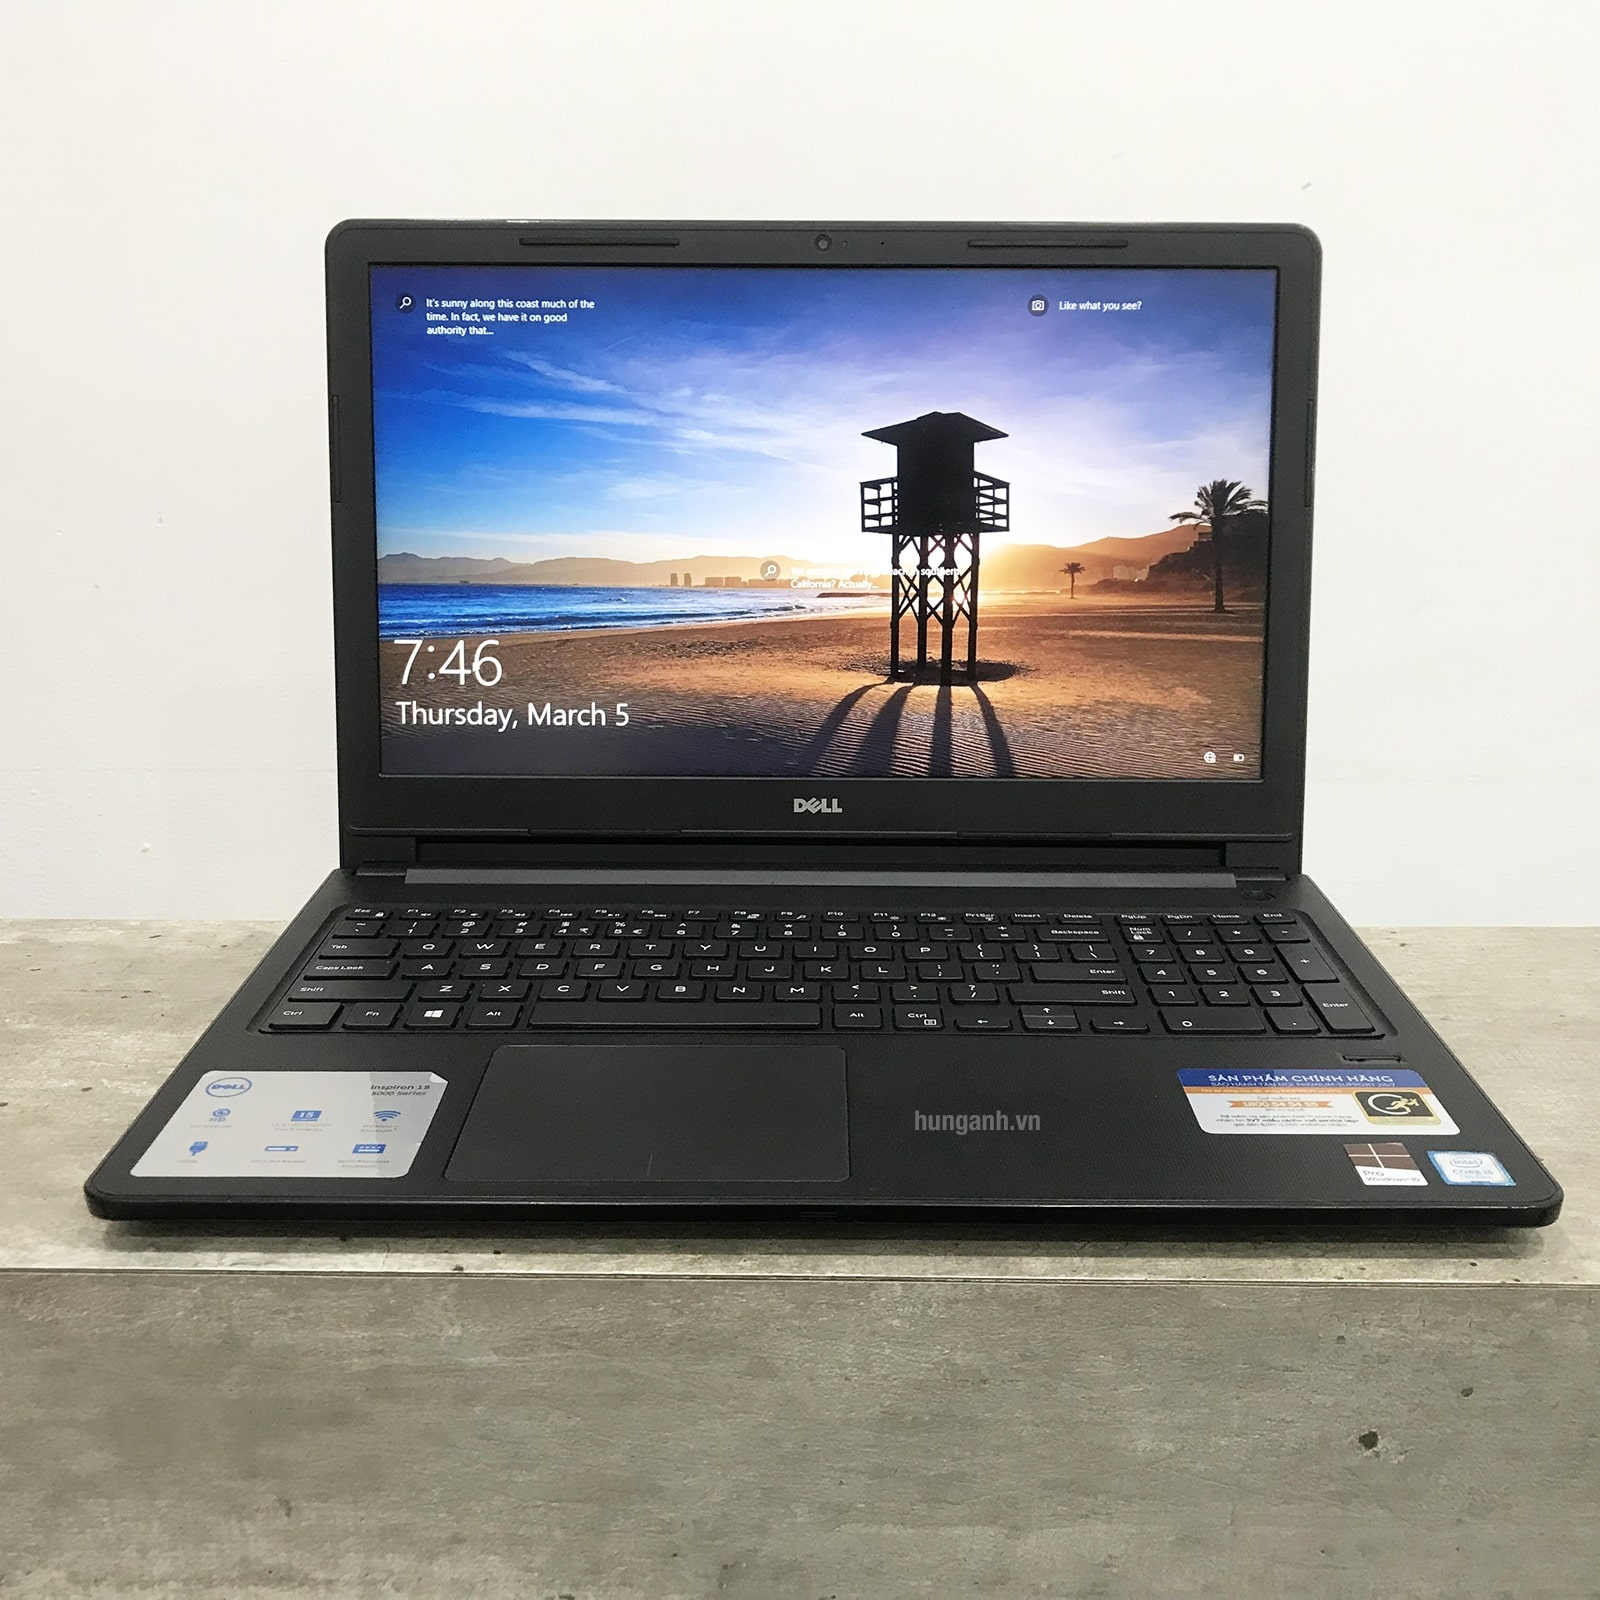 Dell Vostro 3568 Core i5 7200U, Ram 4GB, HDD 500GB, VGA On HD Graphics 620, 15.6 inch